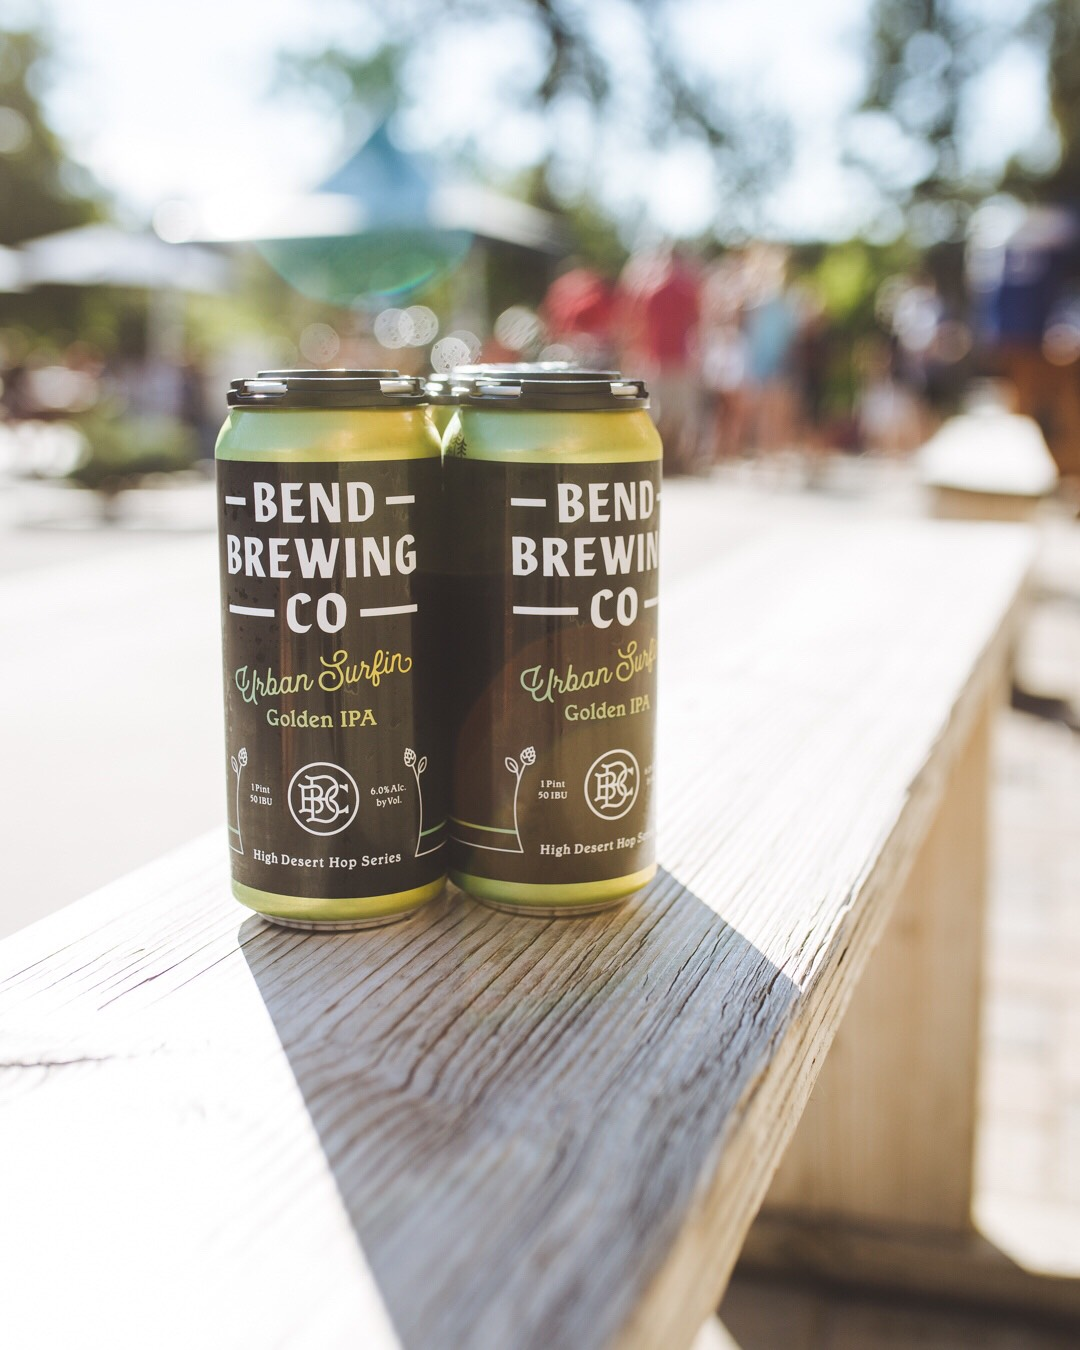 Bend Brewing Company announces the release of Urban Surfin